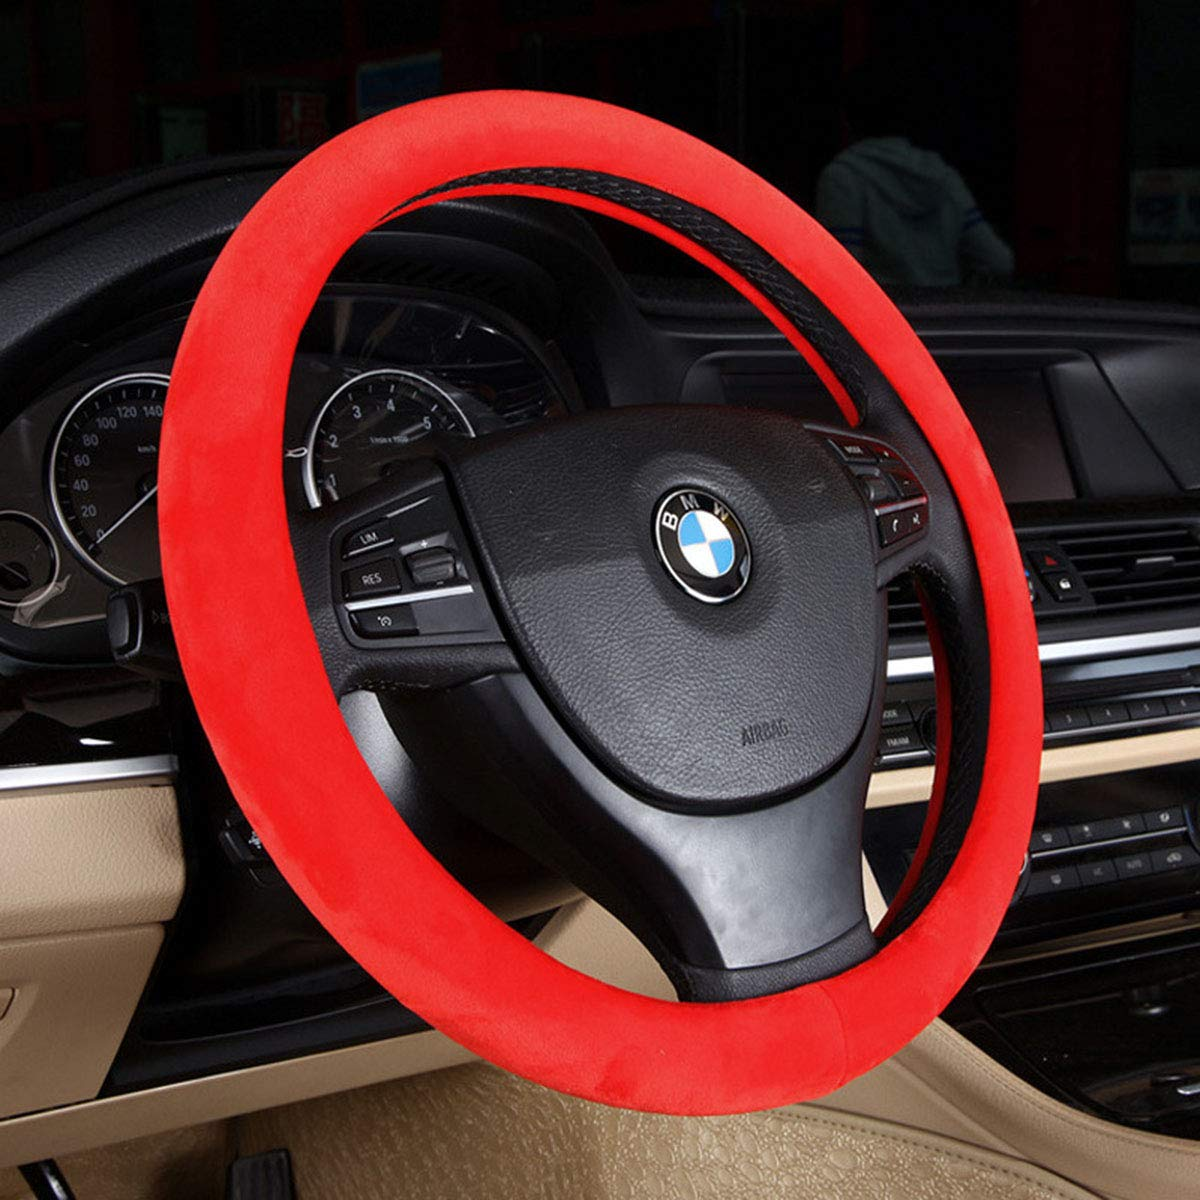 Car Steering Wheel Cover Universal Premium Faux Wool Car Steering Wheel Plush Cover 15 Inch Middle Size Auto Anti-slip Wheel Cushion Protector Winter Warm Auto Comfortable Thermal Steering Wheel Cover